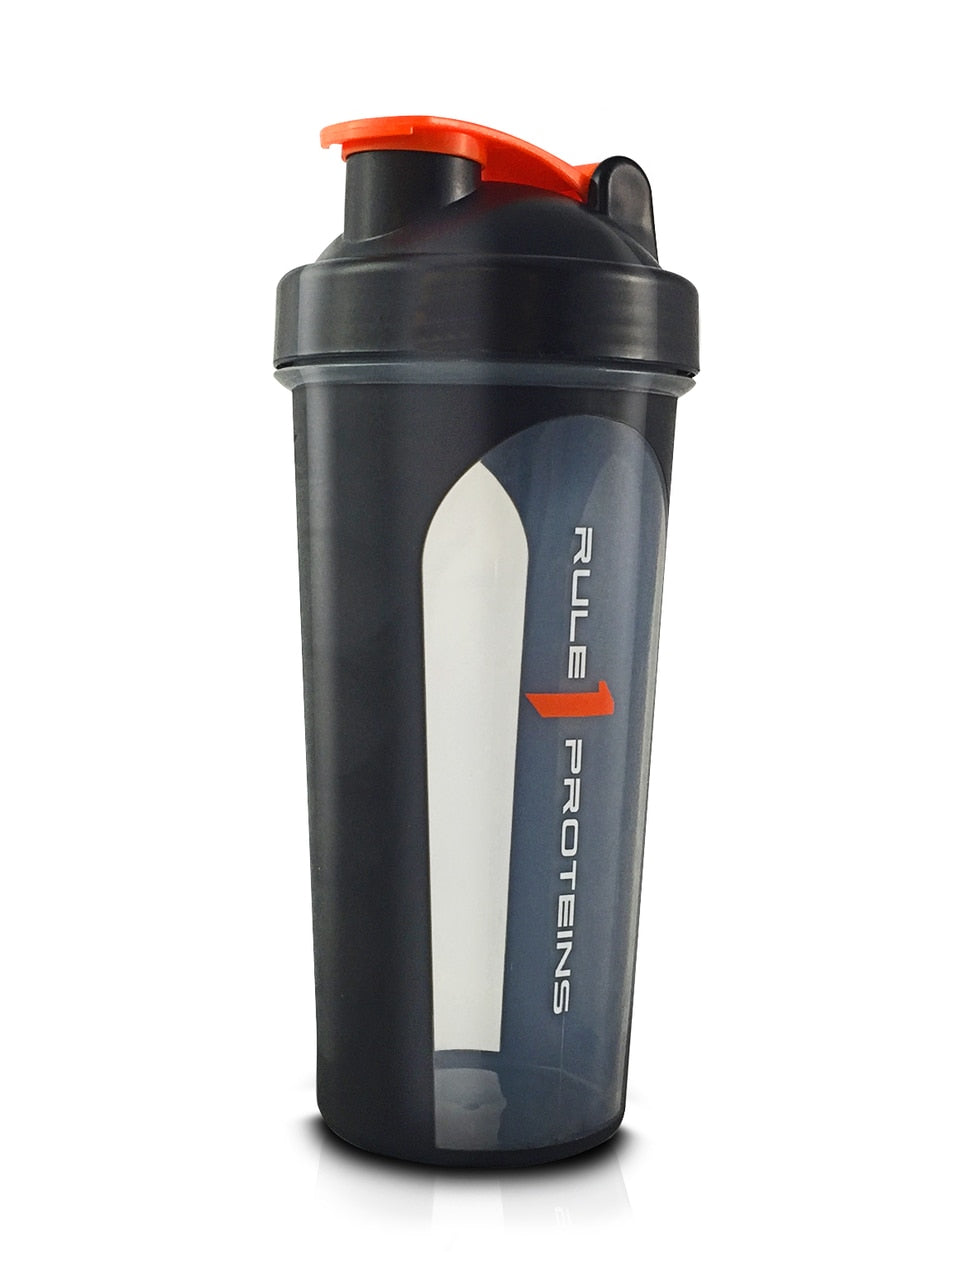 Black R1 Rubber Grip Shaker